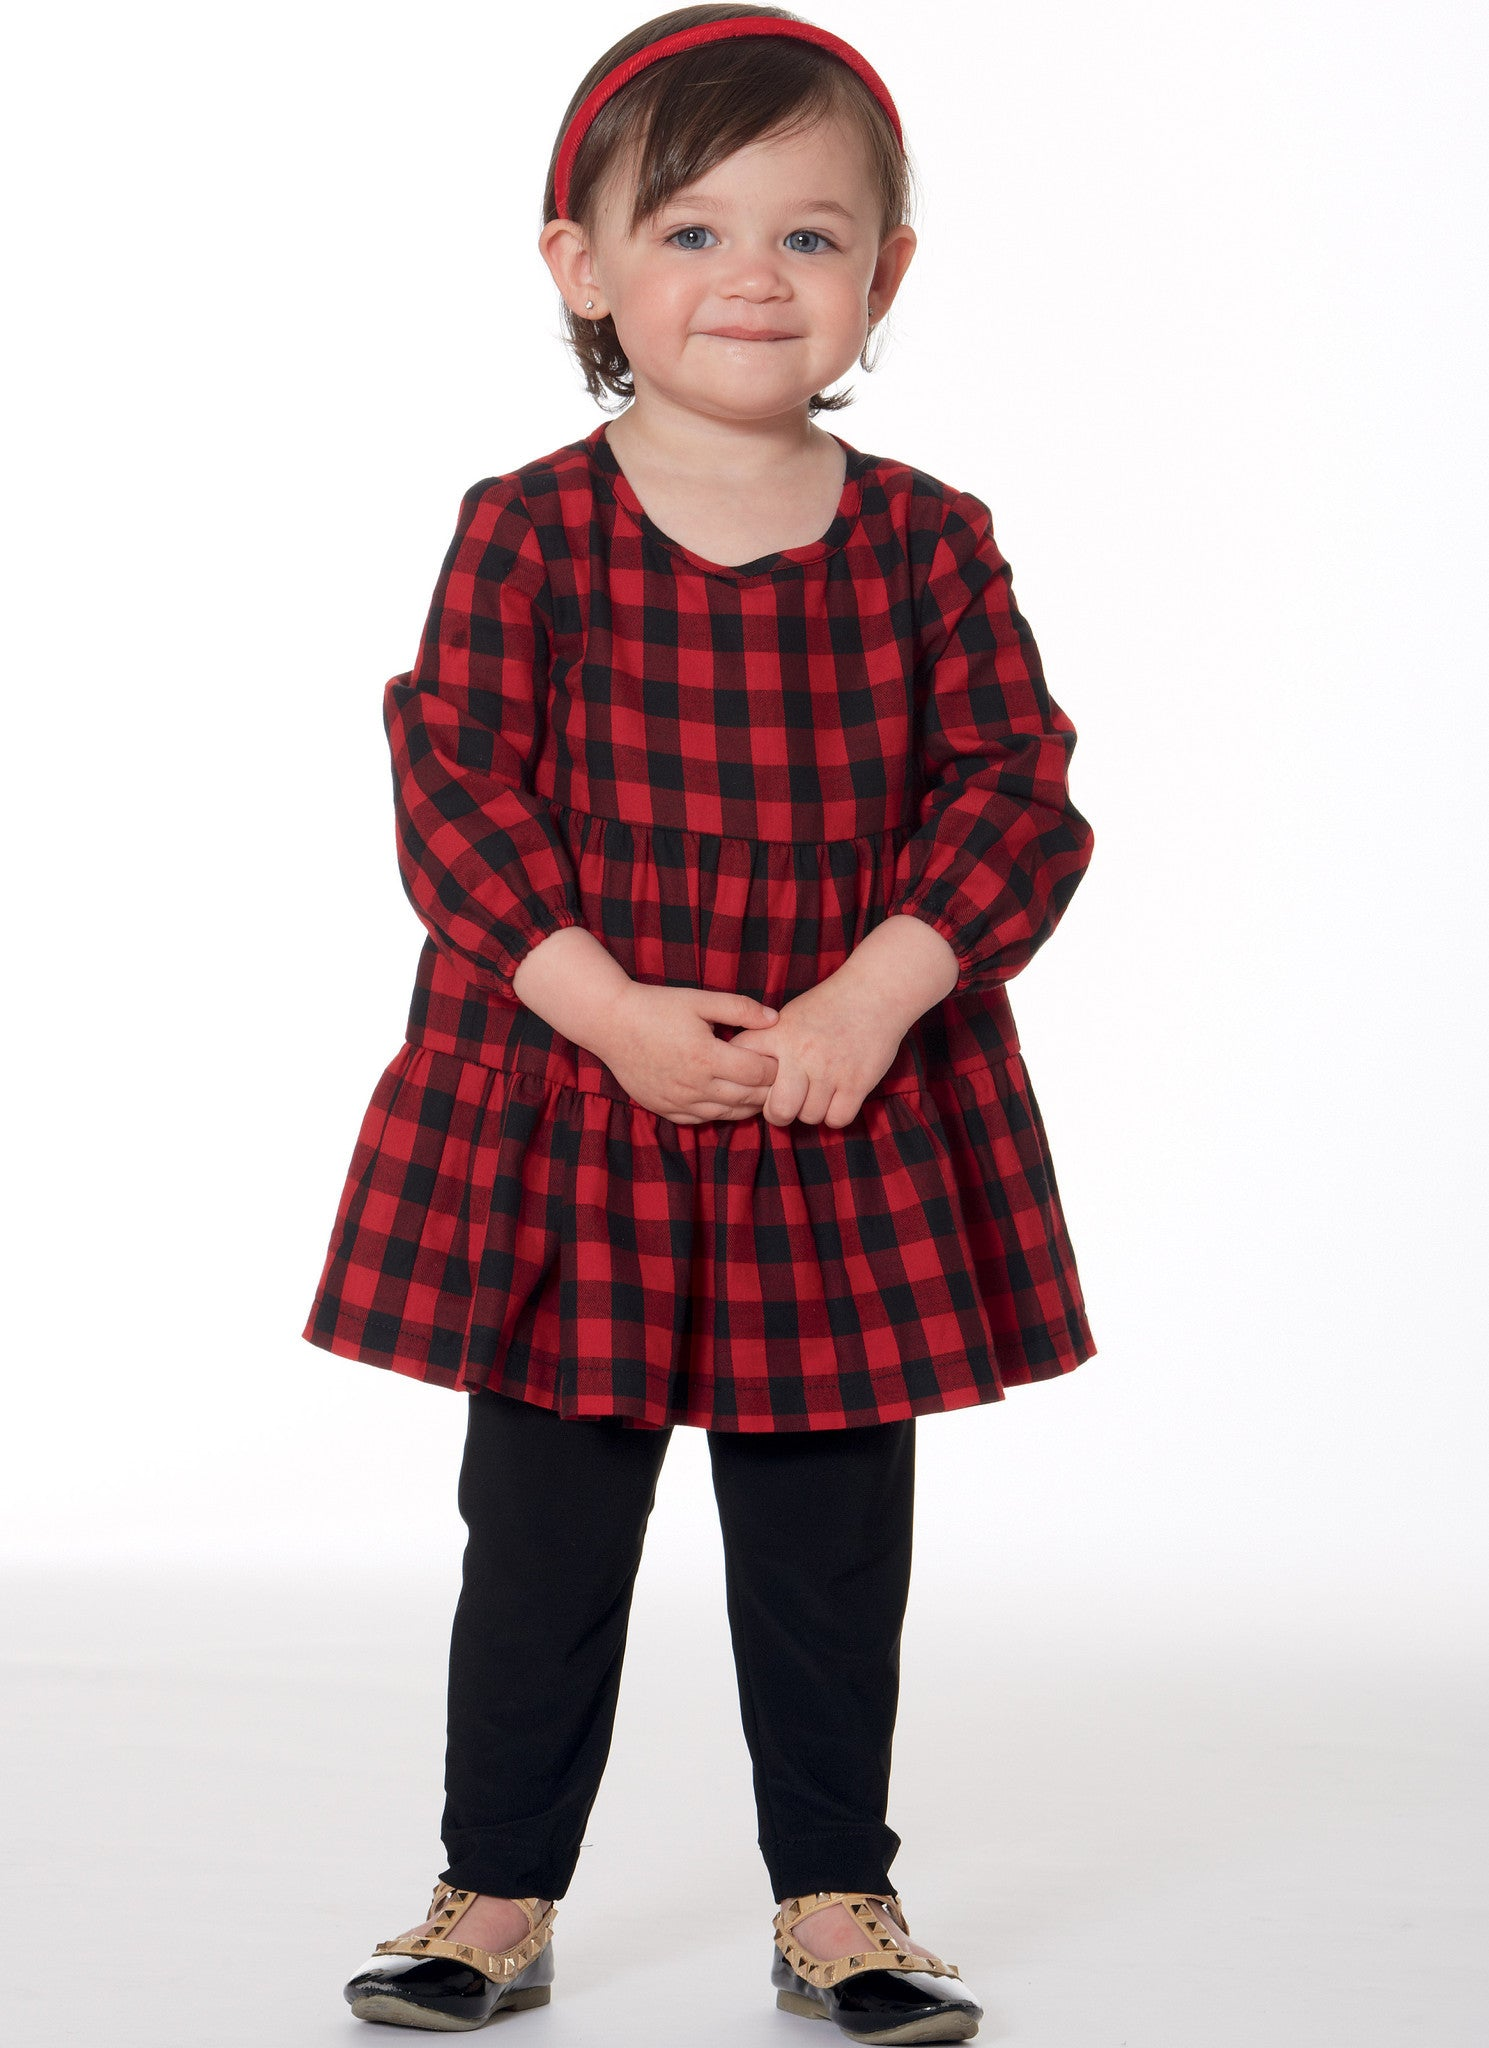 M7458 Toddlers' Gathered Tops, Dresses and Leggings